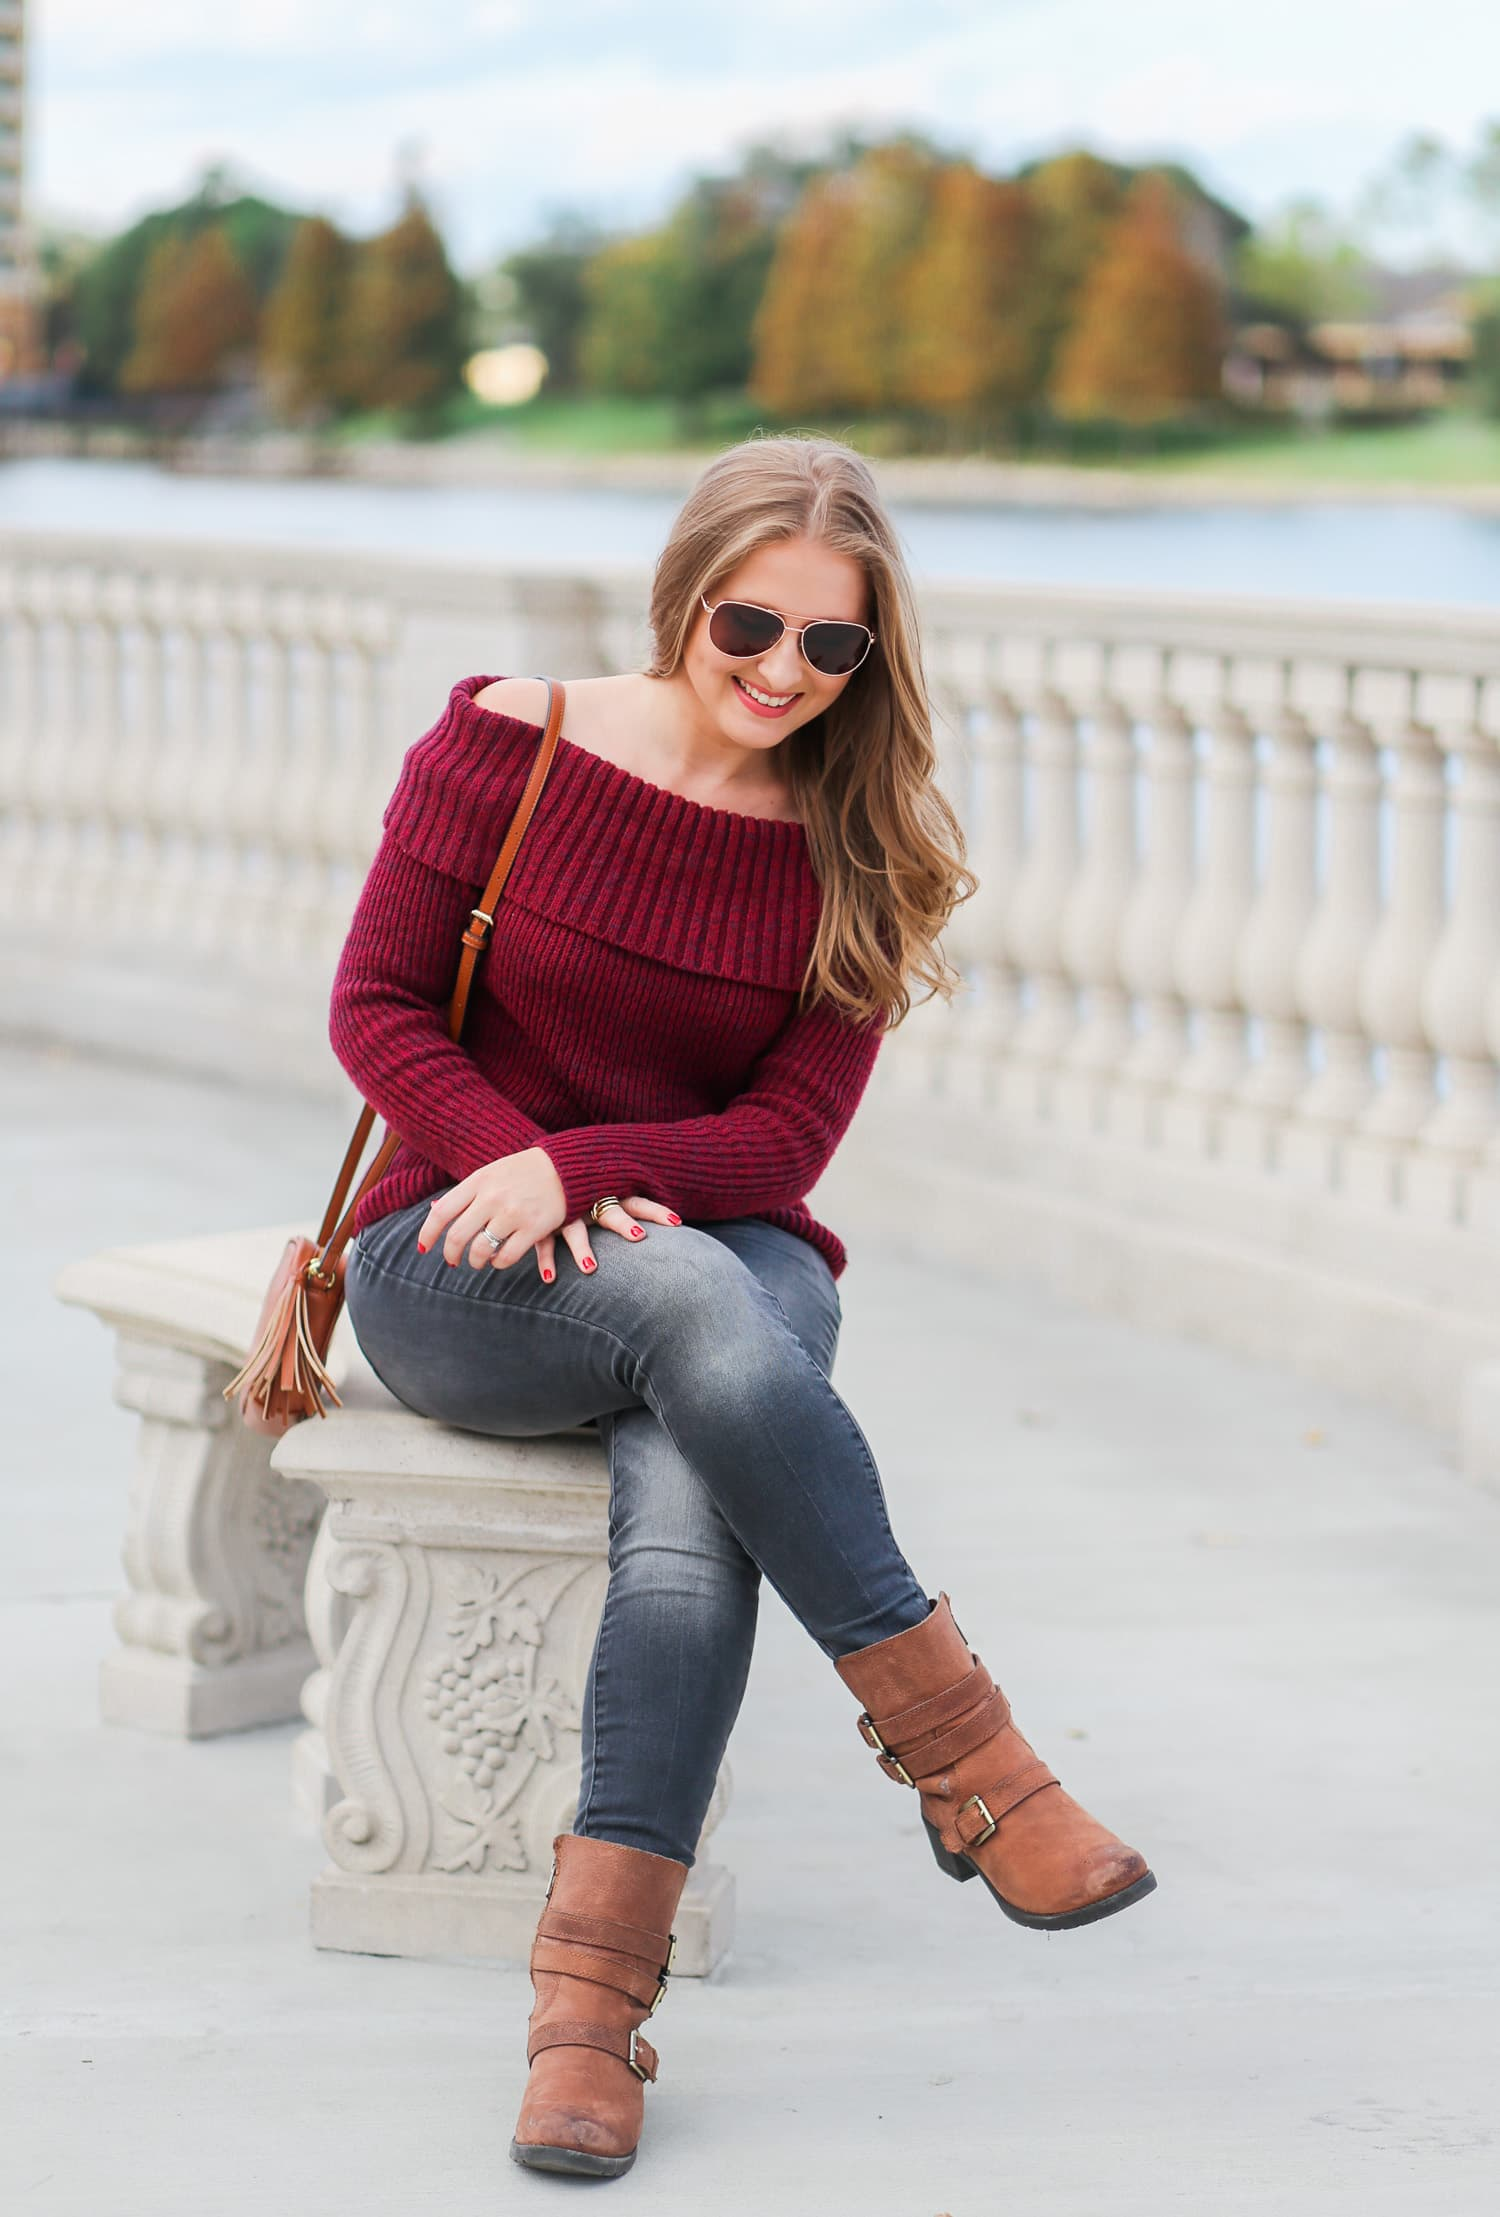 casual-winter-outfit-off-the-shoulder-sweater-gray-jeggins-moto-boots-foster-grant-rose-gold-aviator-sunglasses-7716-2